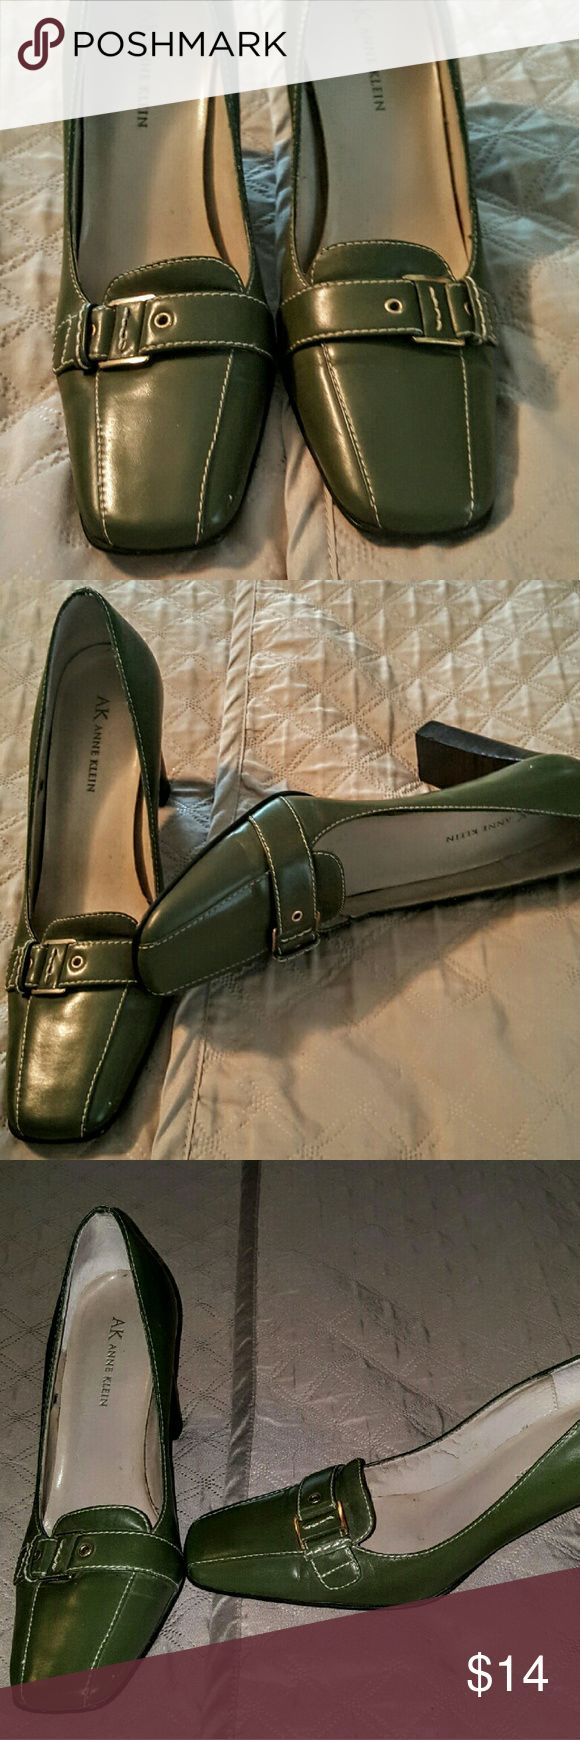 Anne Klein Olive Green Shoes Anne Klein Olive Green Shoes. Size 7. Slight wear which is visible in the pictures. Anne Klein Shoes Heels